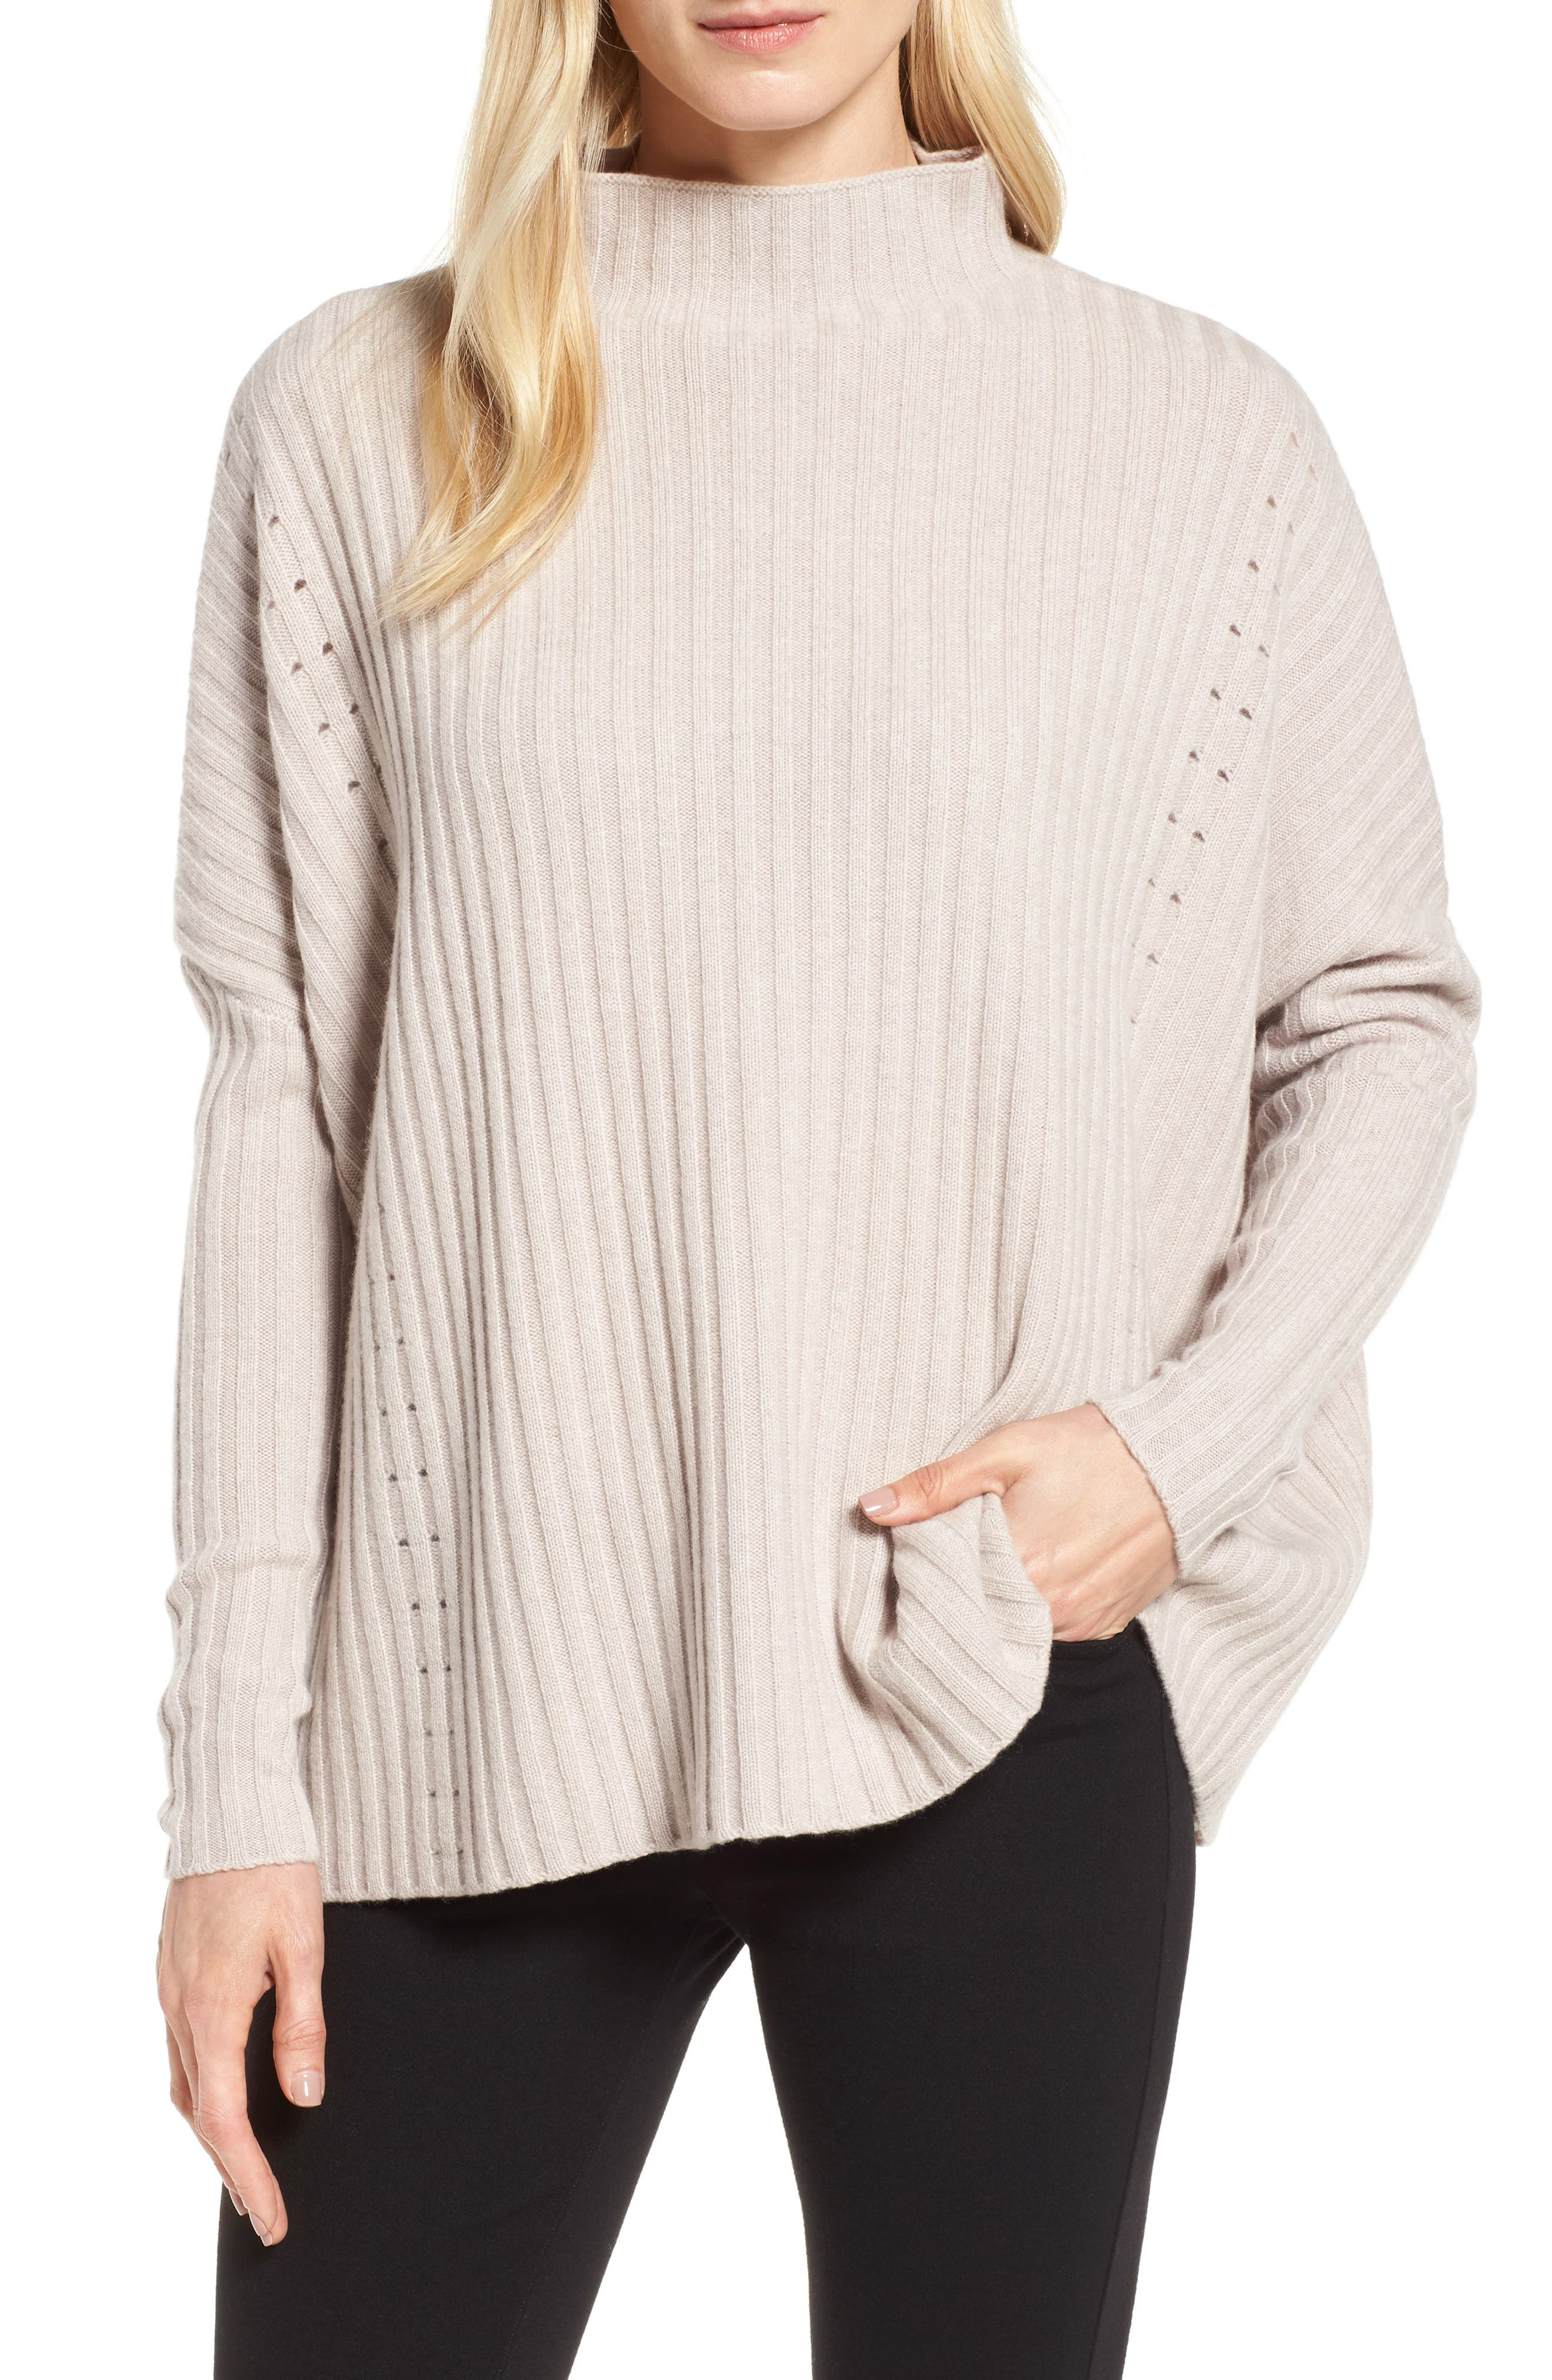 Nordstrom Signature Boxy Ribbed Cashmere Sweater